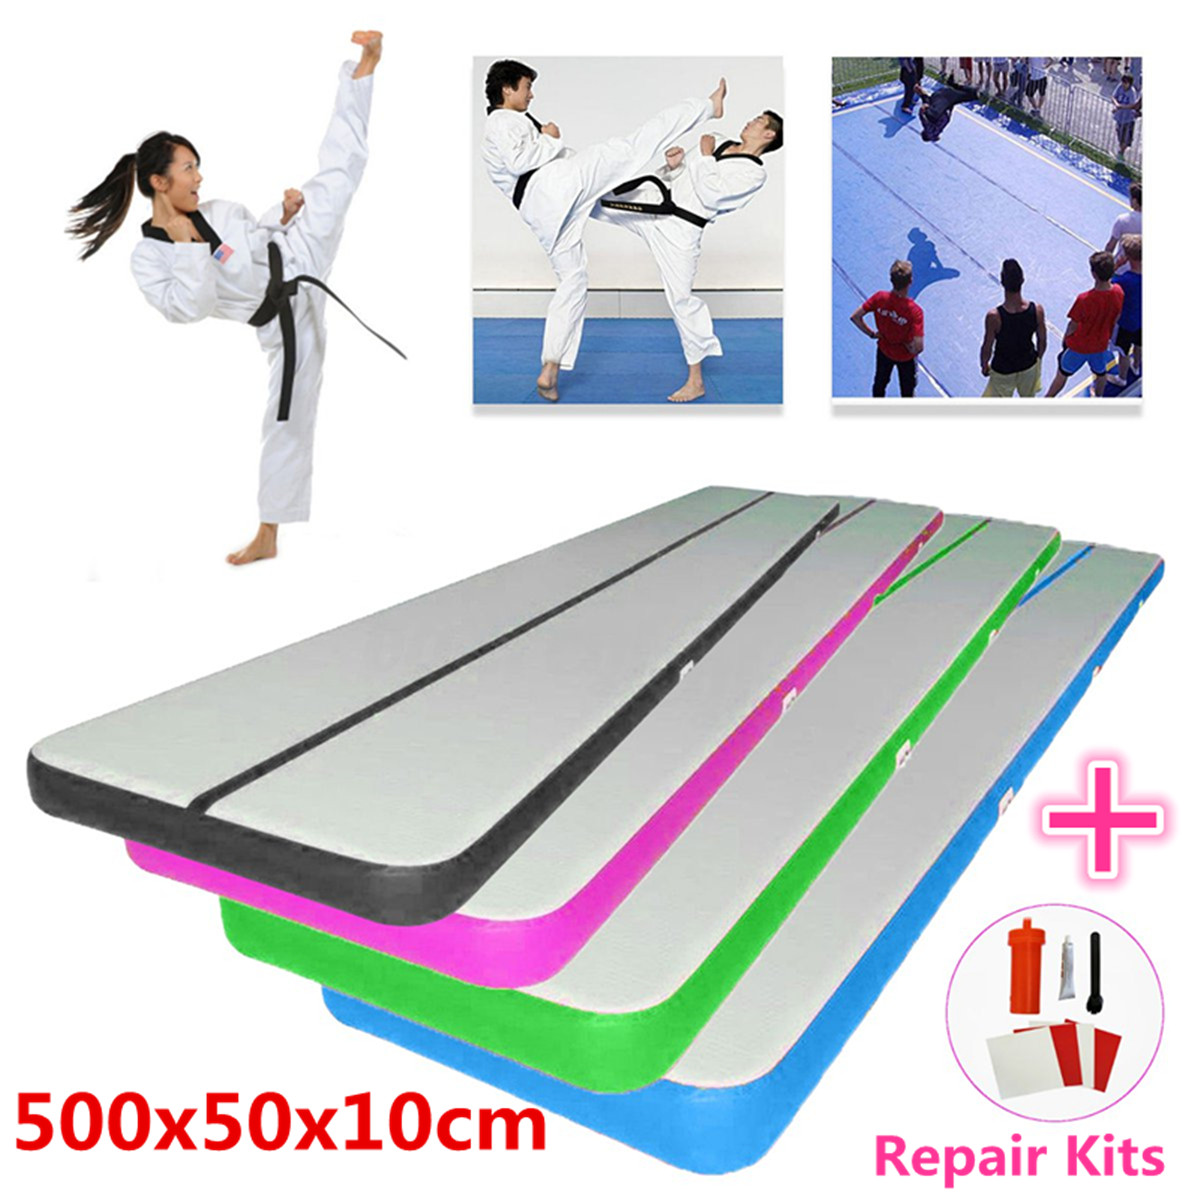 500x50x10cm Airtrack Air Track Floor Home Inflatable Gymnastics Tumbling Mat GYM Inflatable Balance Equipment Exercise gofun airtrack 10ft x 3 ft air tumbling track mat gymnastics exercise pad inflatable gym training mats balance beam 110v air